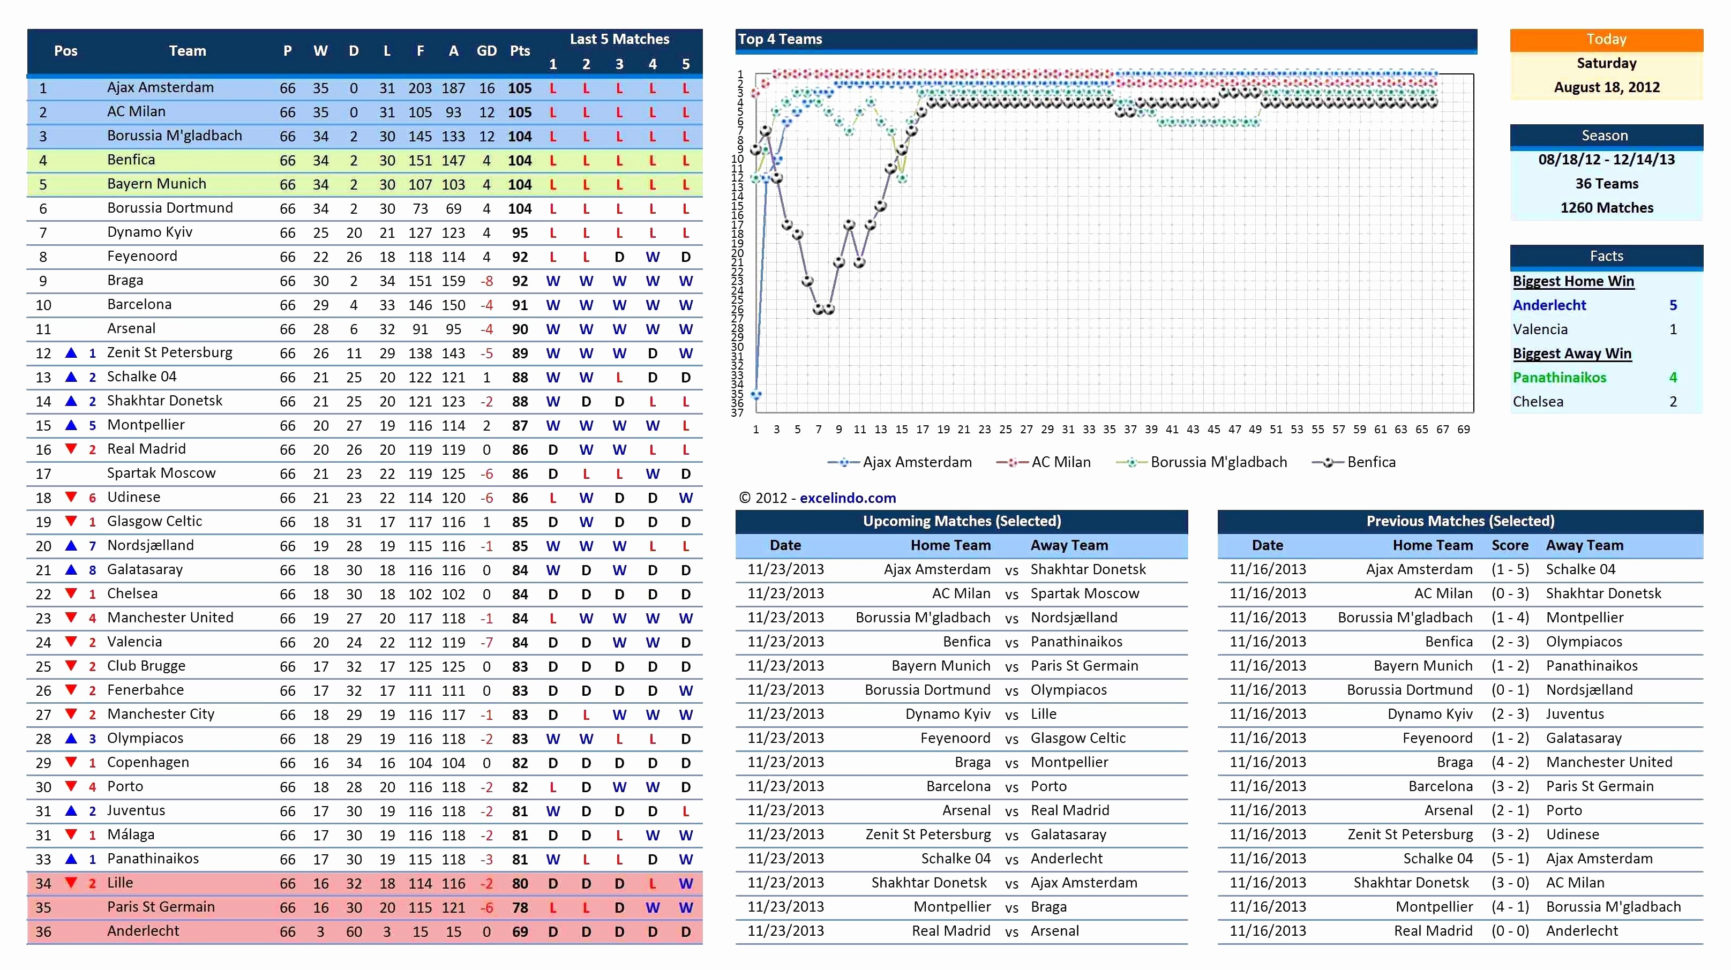 Excel Statistical Spreadsheet Templates In Baseball Statistics Spreadsheet Template  Kayakmedia.ca